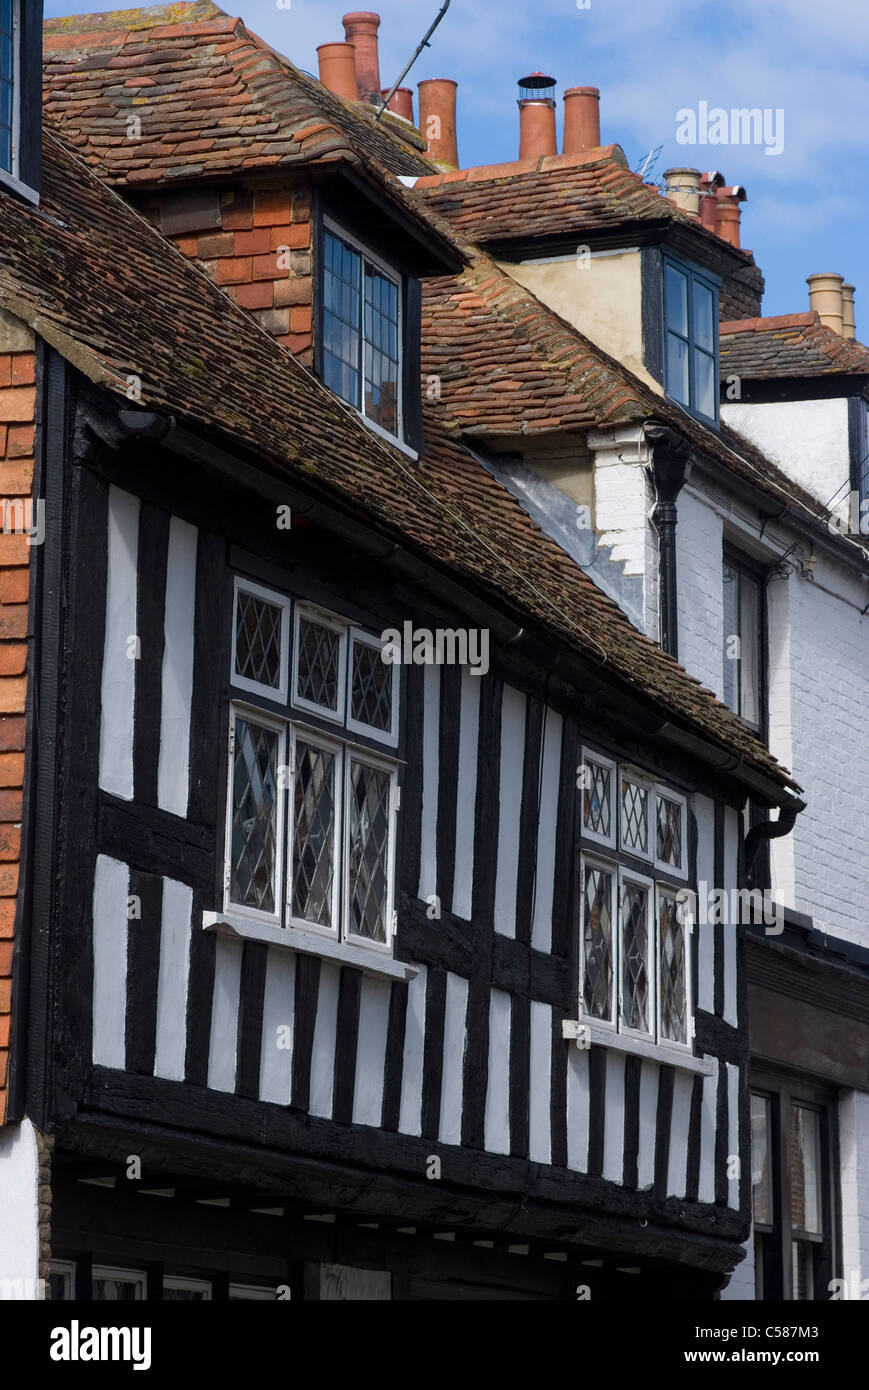 Land Gate town wall, built in 1380, with two massive drum Towers up to 40 feet high, Rye, Sussex, Englan - Stock Image